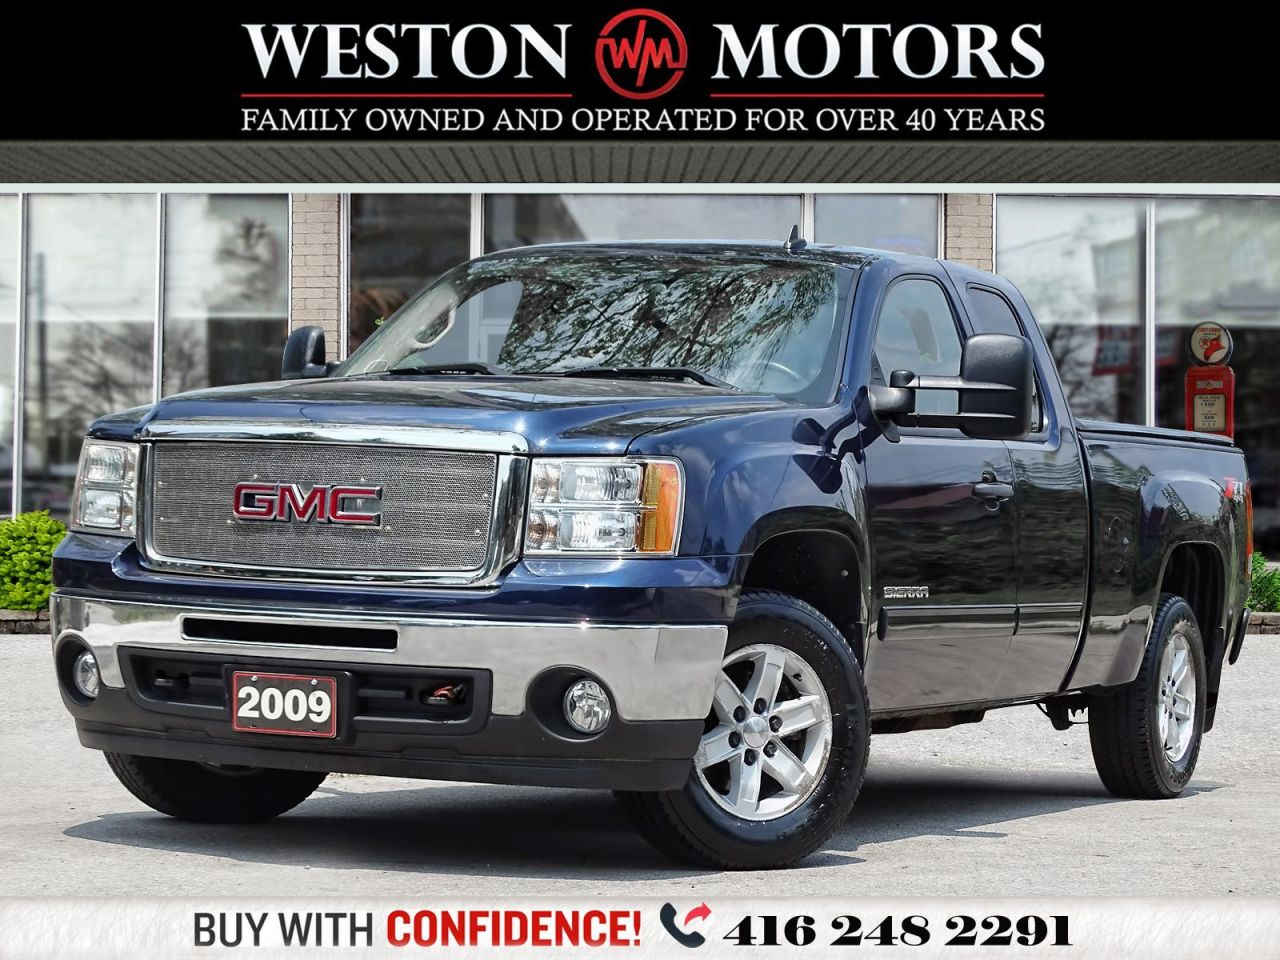 2009 GMC Sierra 1500 SLE*4X4*SUNROOF*EXT CAB*TOW PKG*ONLY 53KMS*